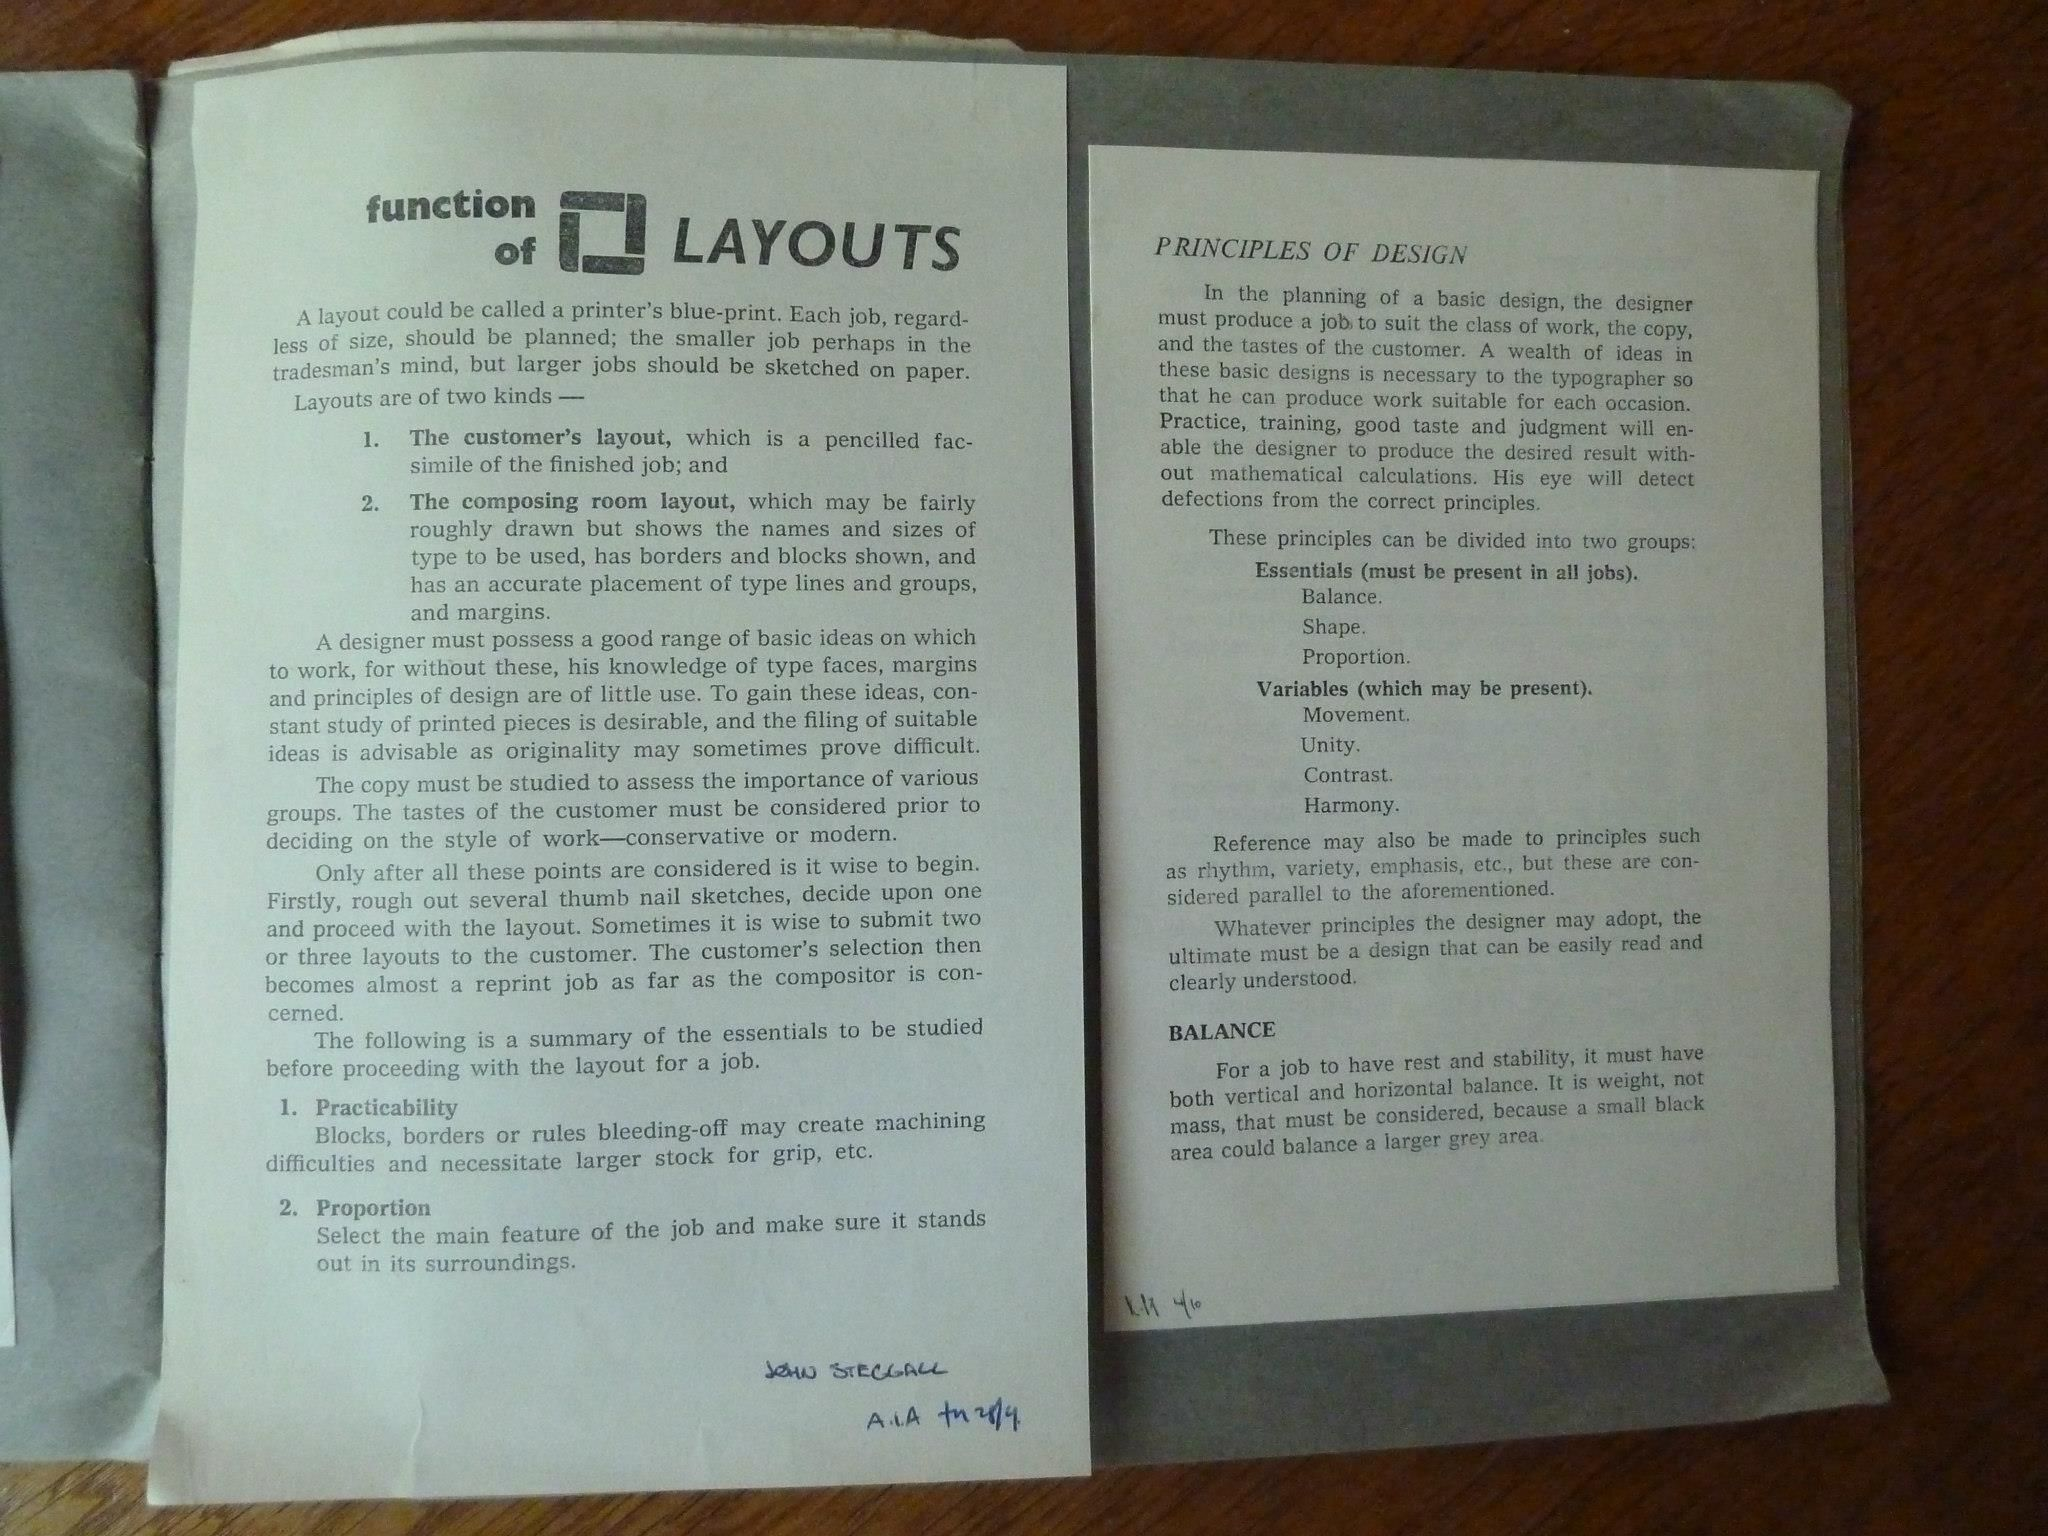 Early principles for good layout.